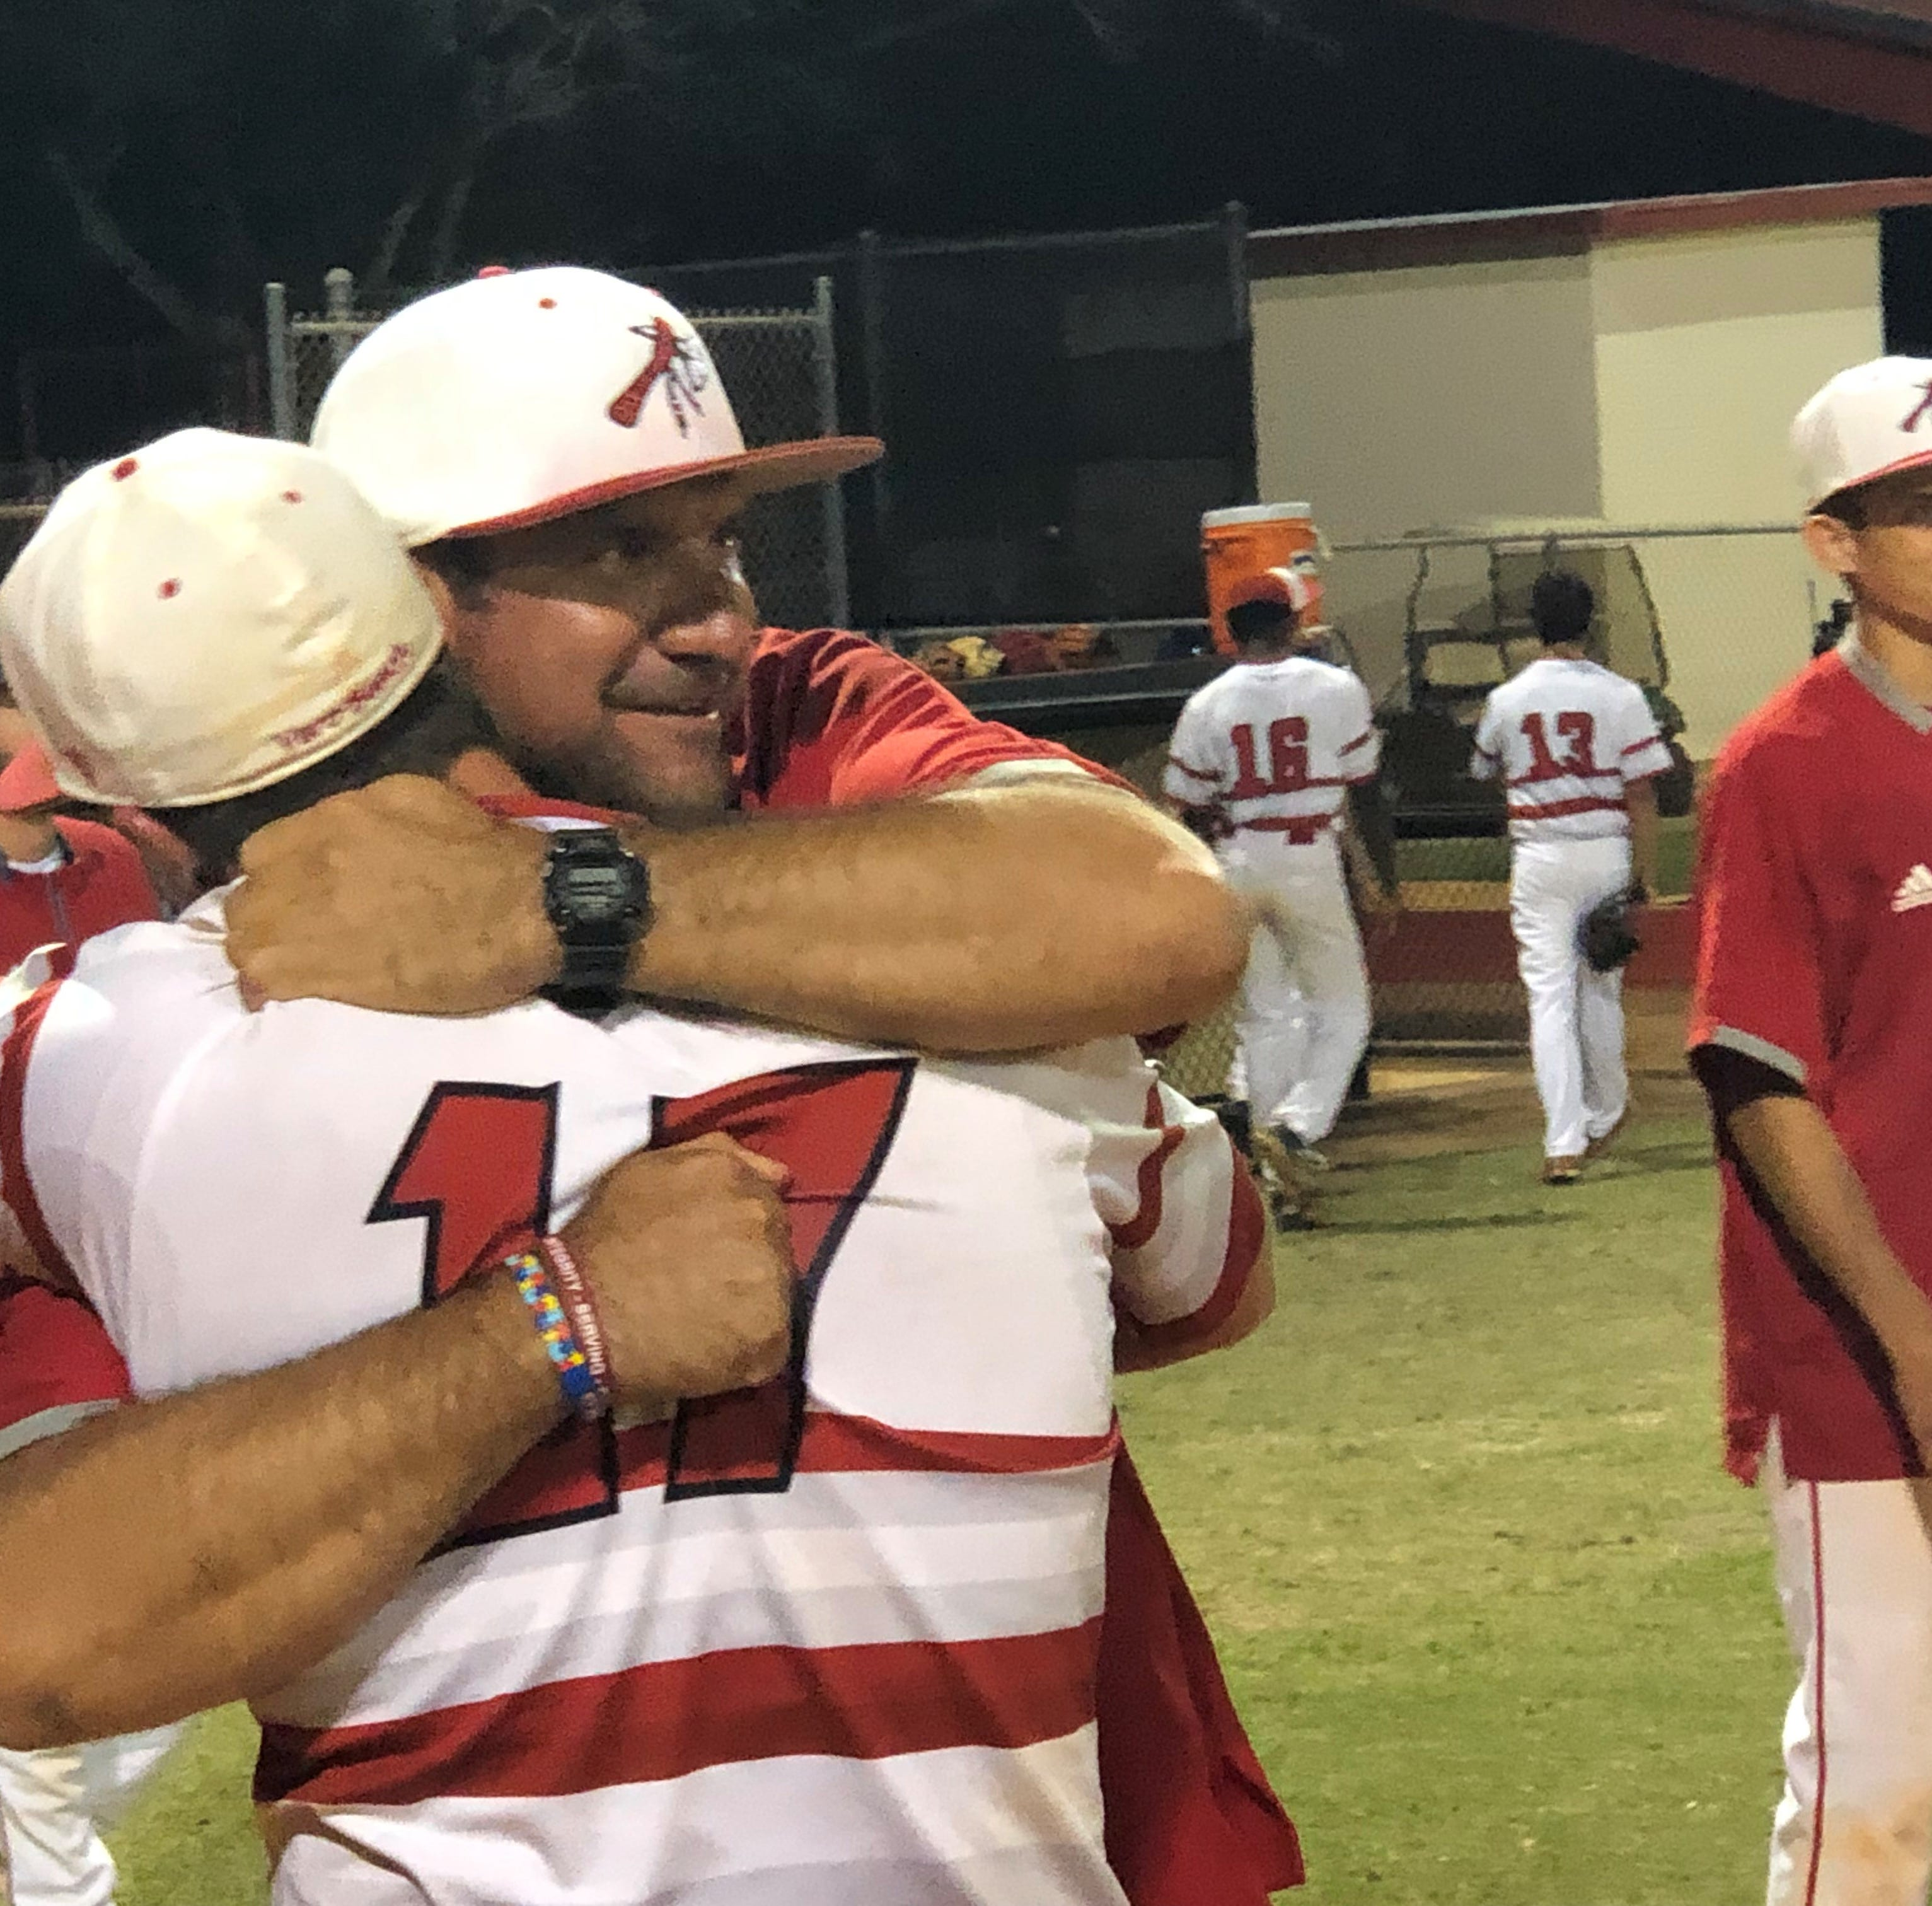 Vero Beach overcomes early deficit to defeat Alonso 3-1 in the 9A Region 2 Quarterfinals